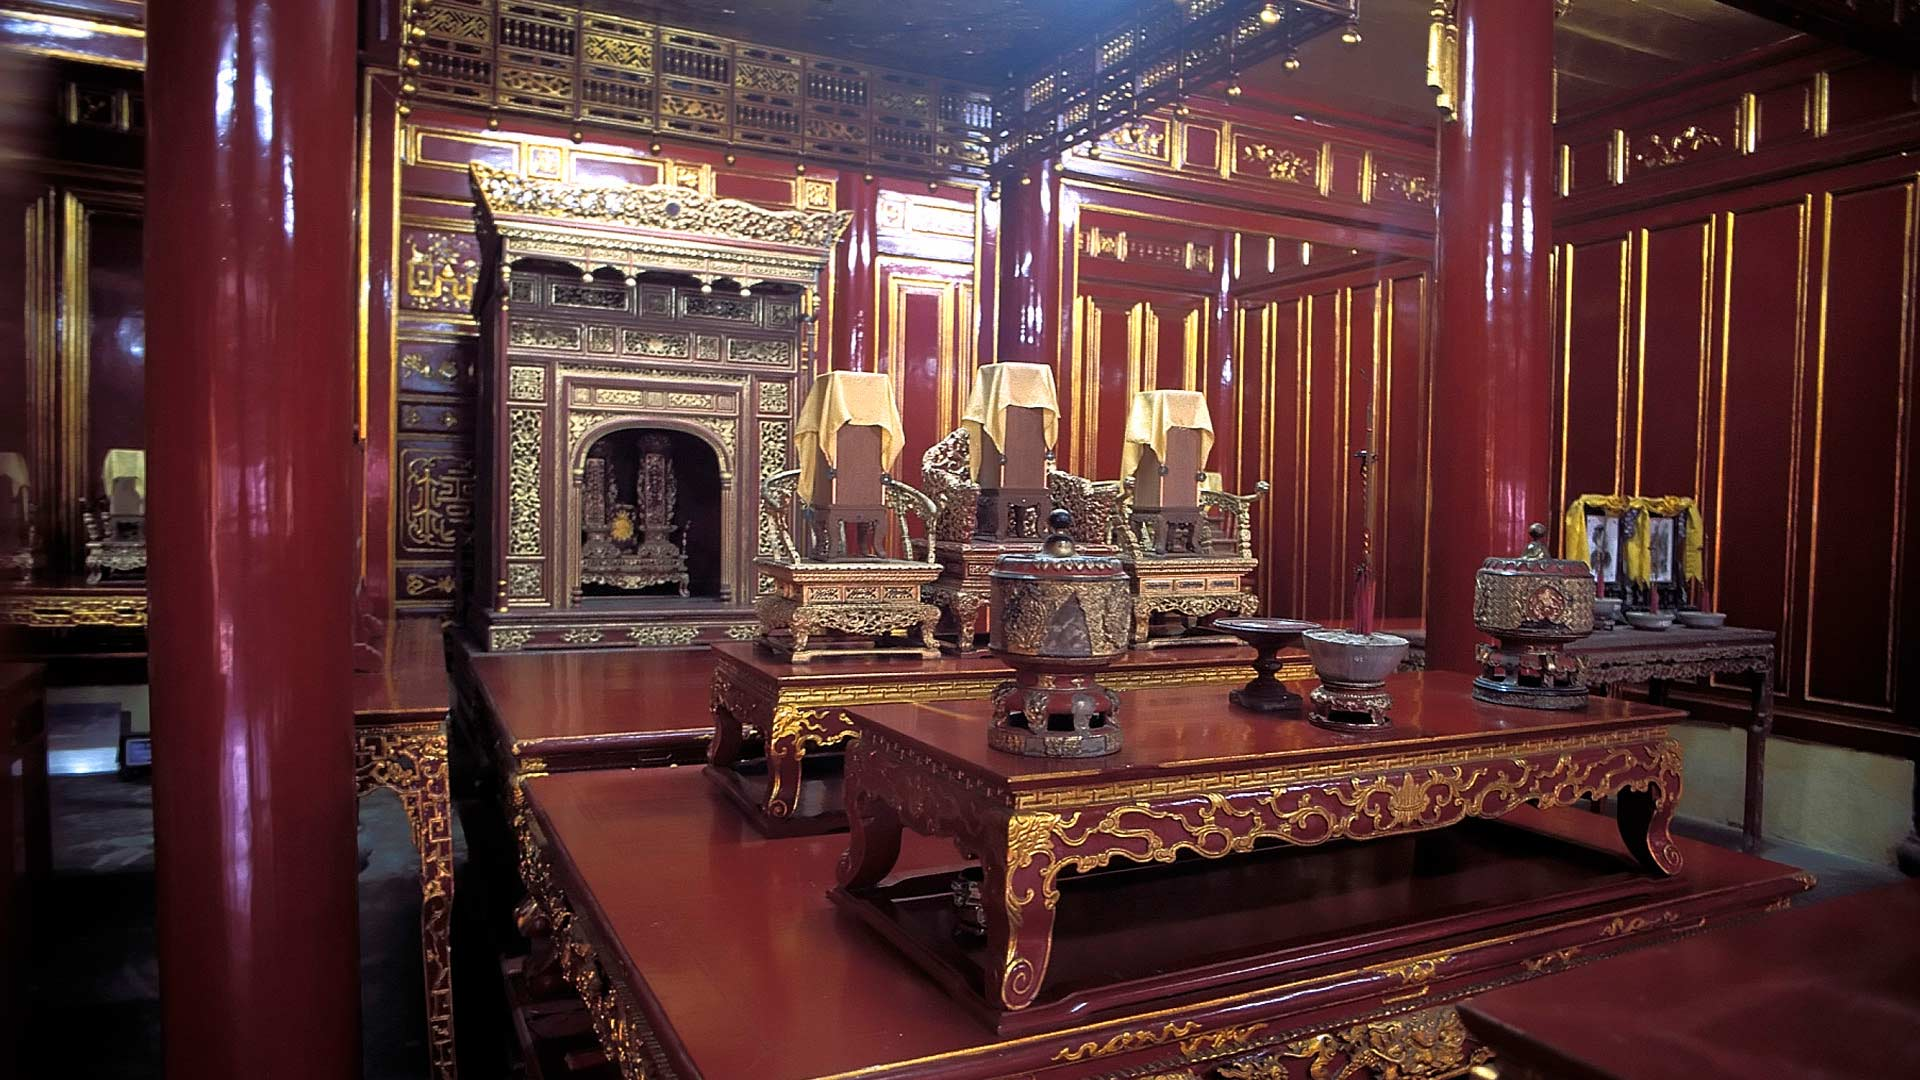 Interior of The Temple in the Imperial City, Hue, Thua Thien-Hue, Vietnam